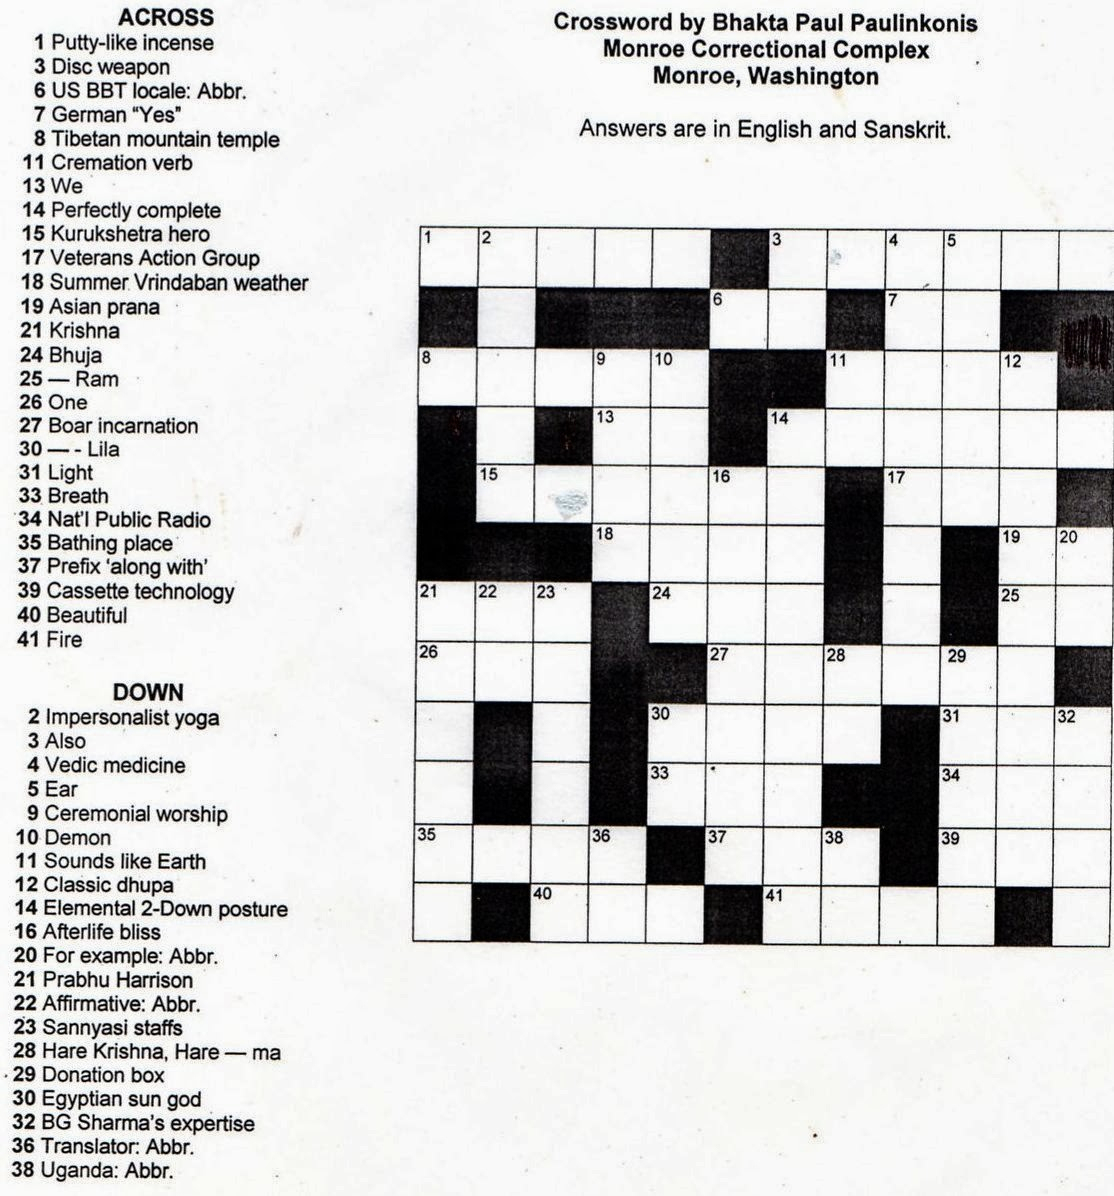 Crosswords Printable Crossword Puzzles For Middle School Puzzle - Printable Crossword Puzzles Middle School